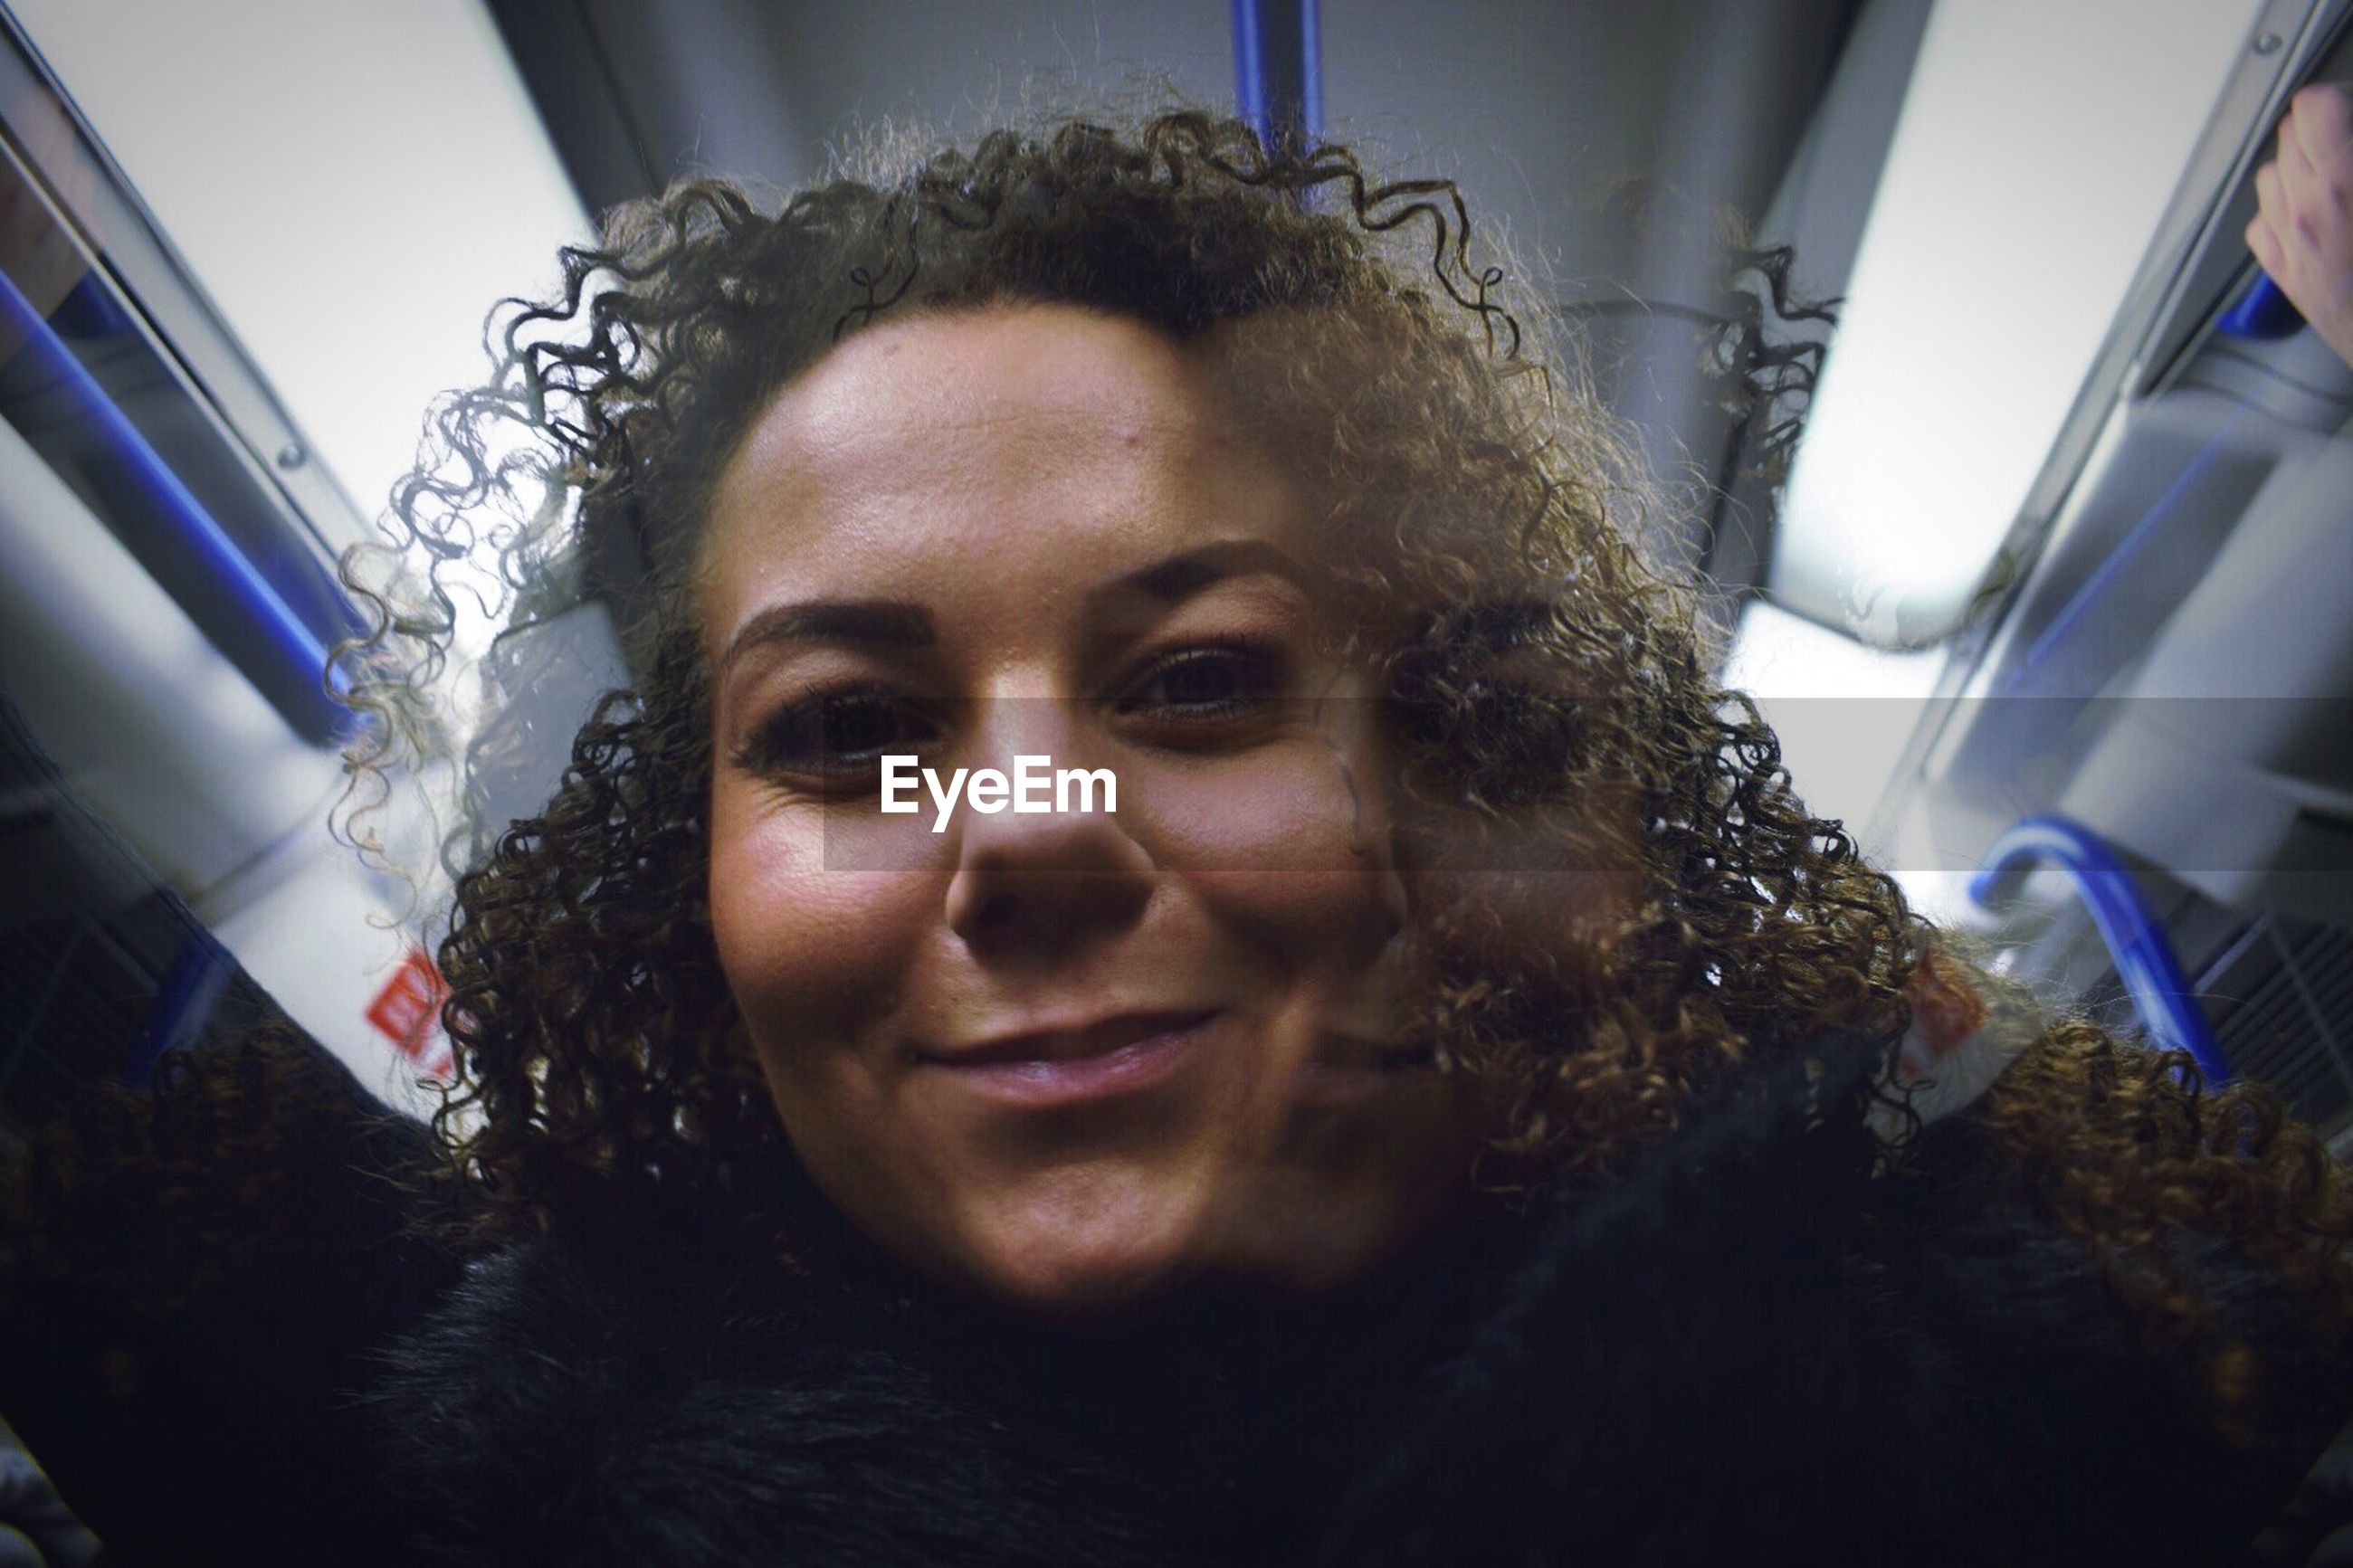 Low angle portrait of woman with curly hair in train